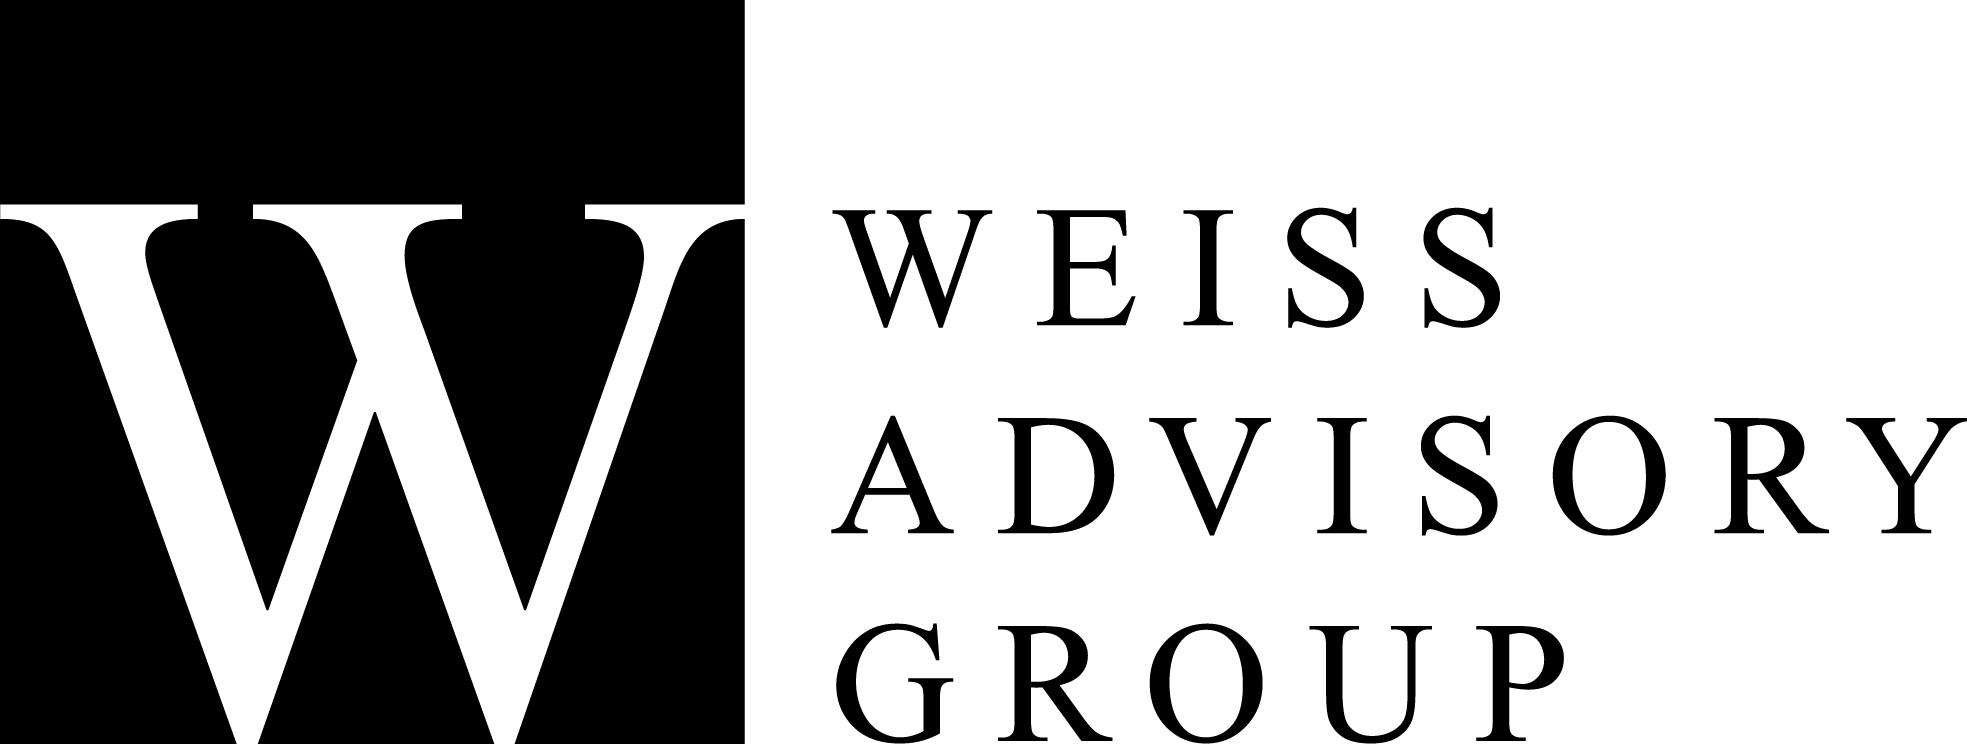 What Are Your Odds of Being Audited? — Weiss Advisory Group